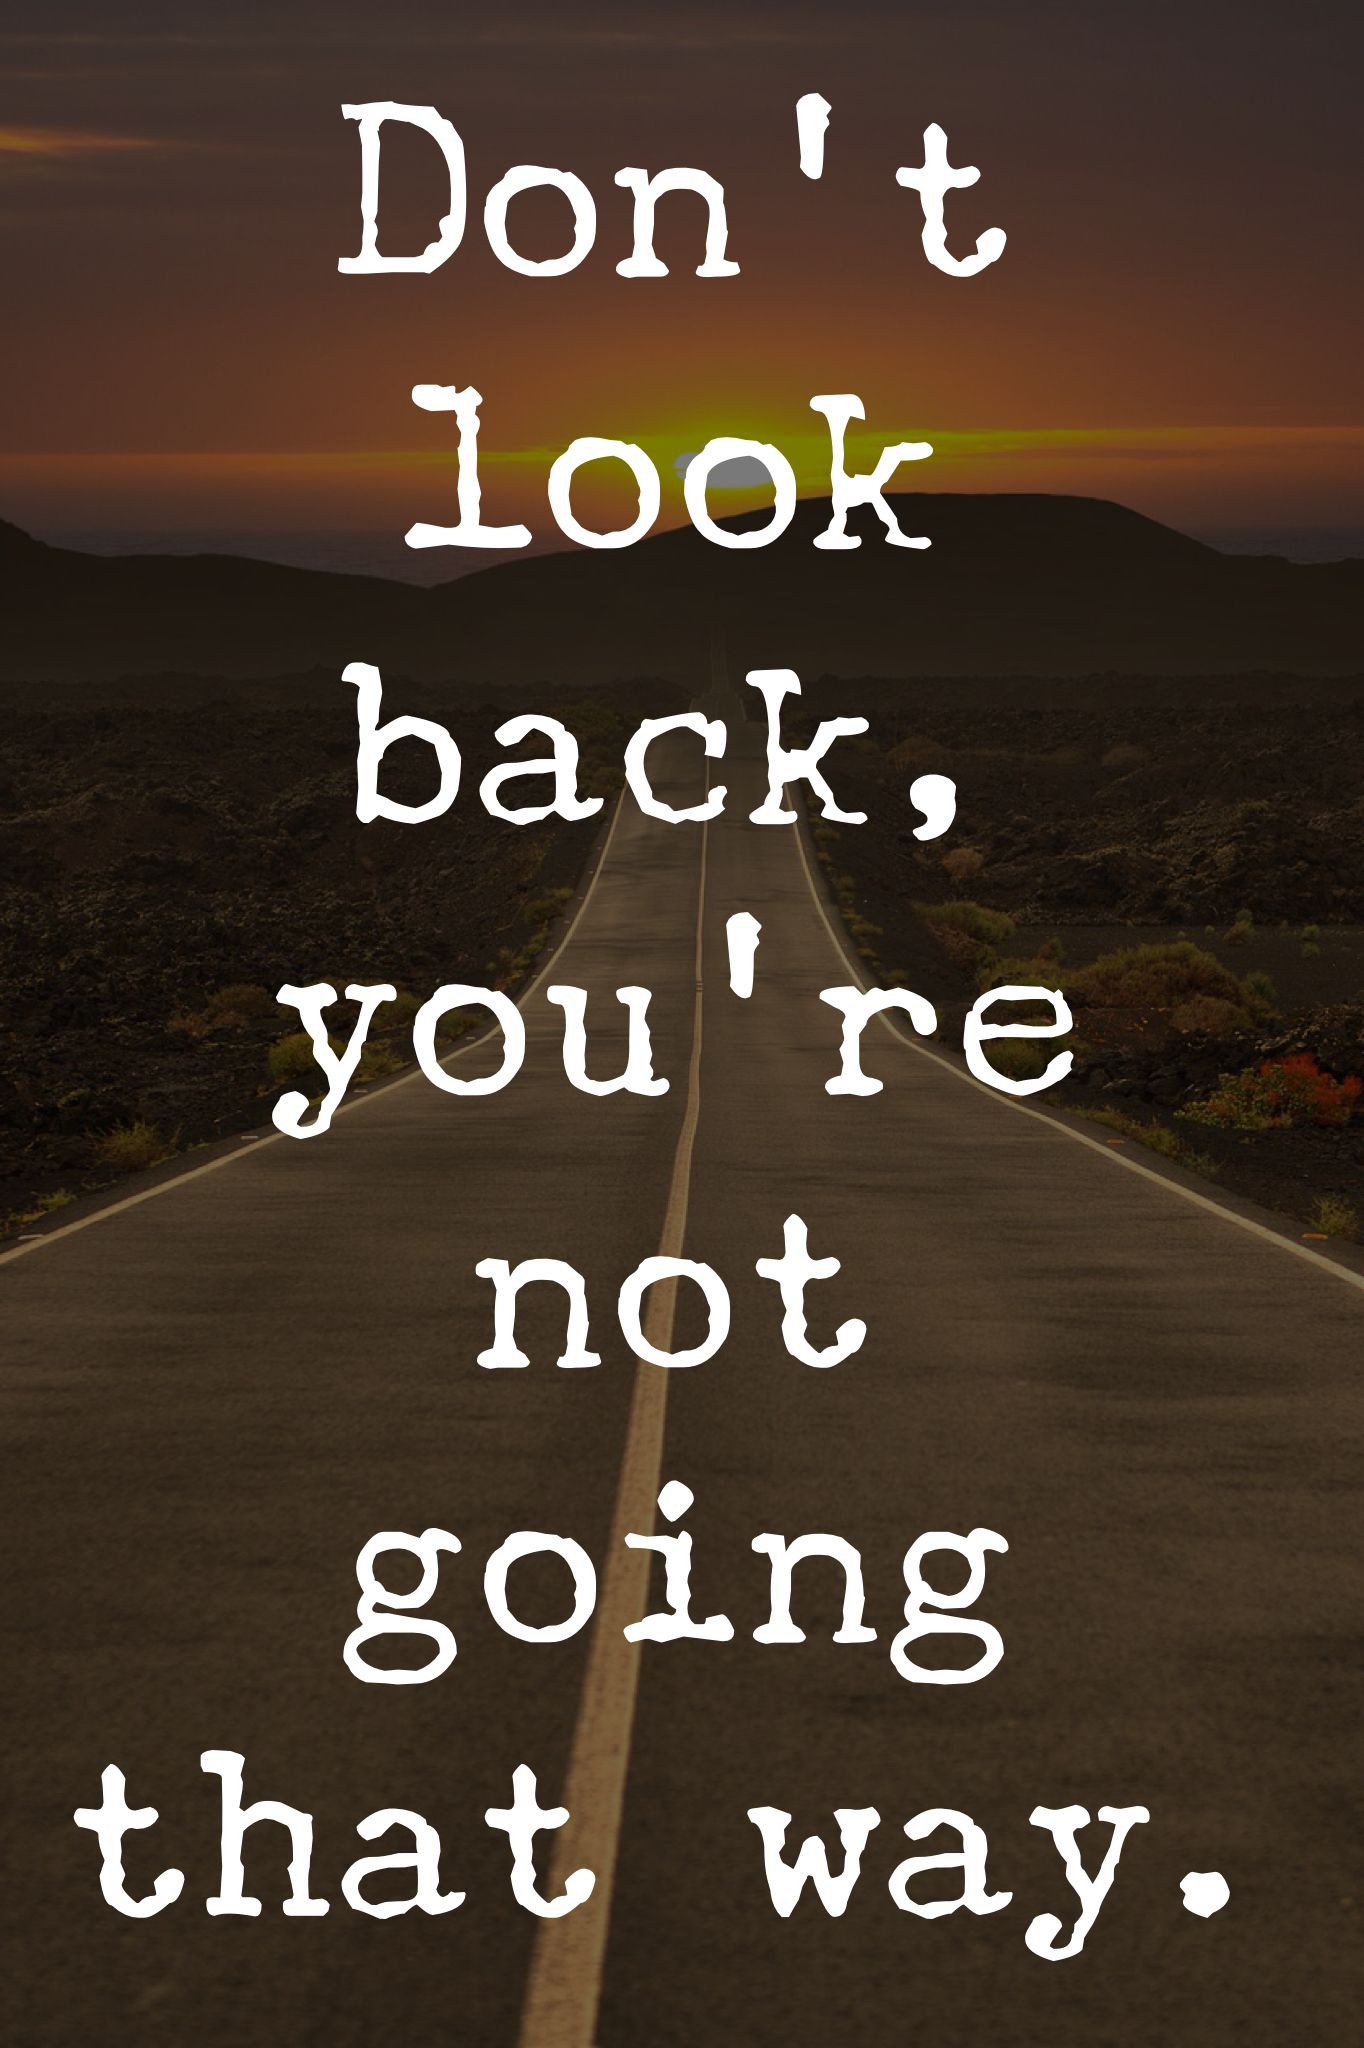 I M Not Looking Back Anymore I M Going That Way Looking Back Quotes Dont Look Back Quotes Wisdom Quotes